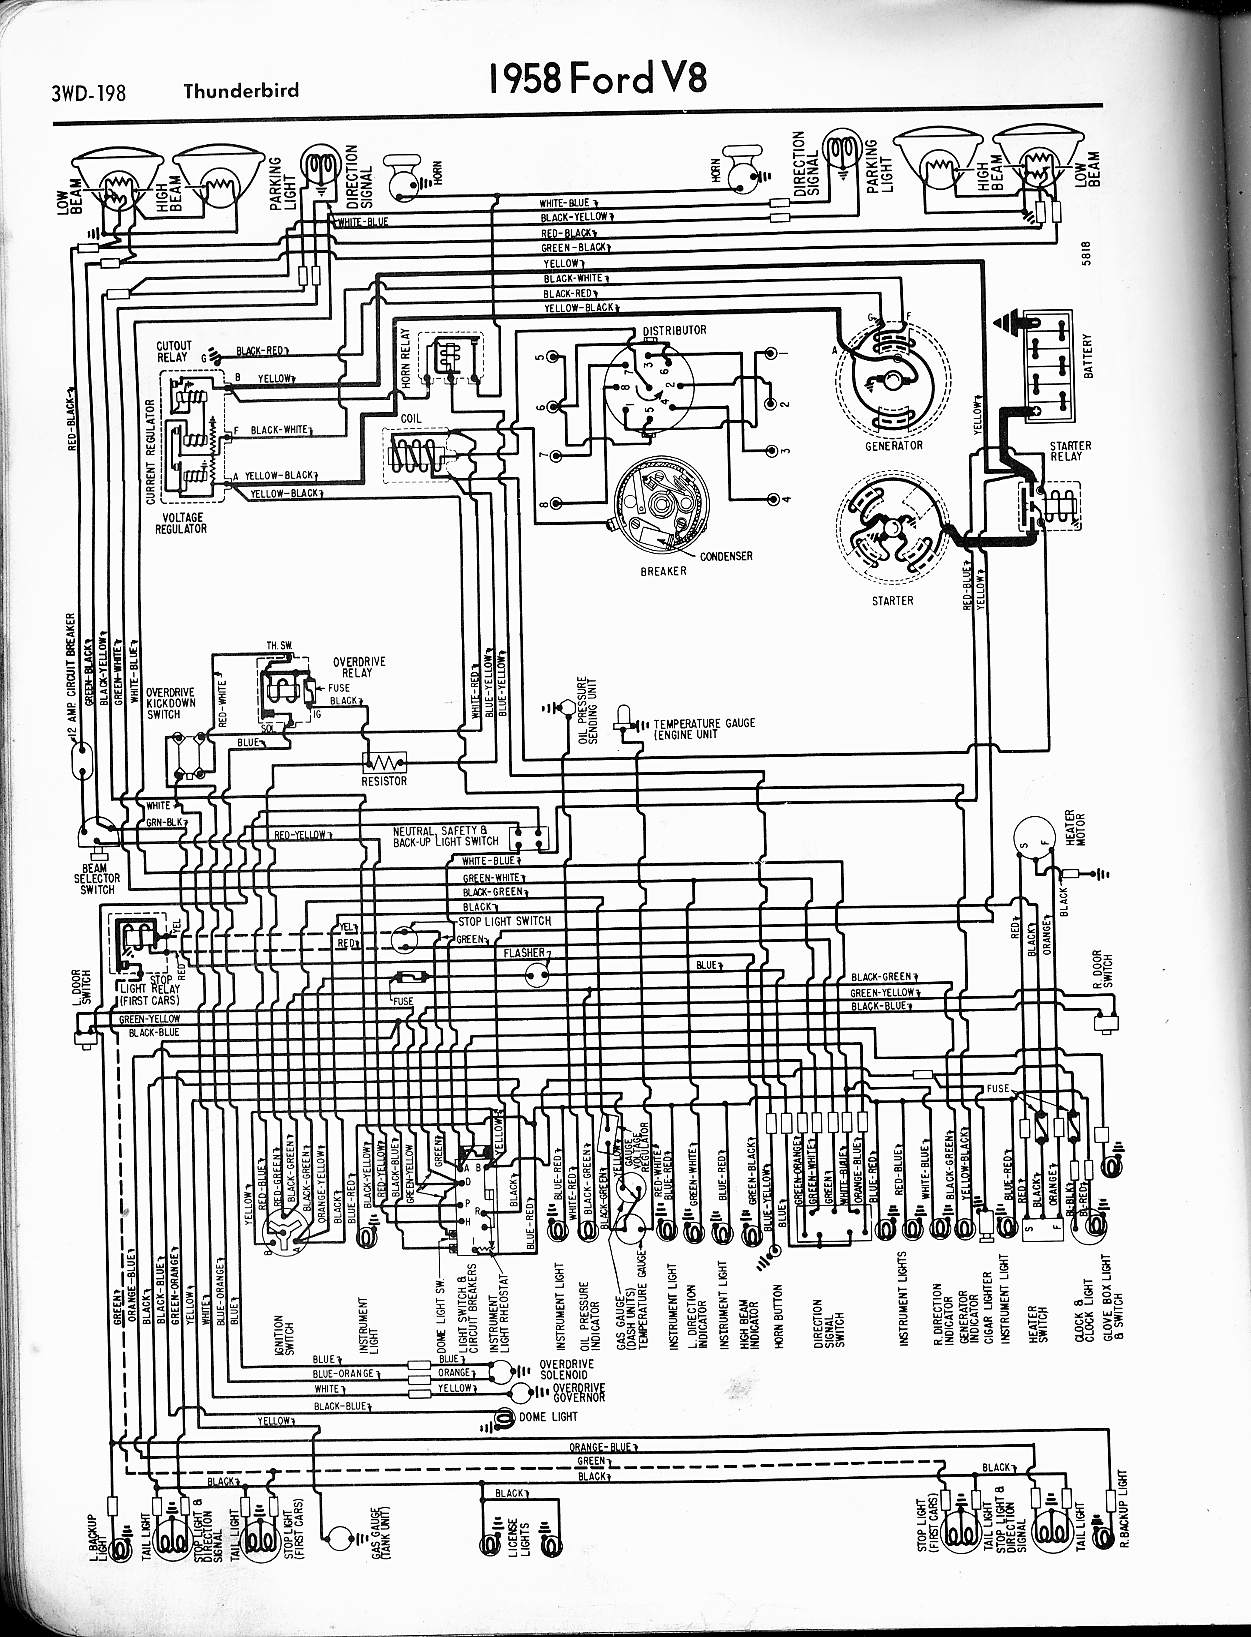 MWire5765 198 57 65 ford wiring diagrams 1955 ford wiring diagram at alyssarenee.co